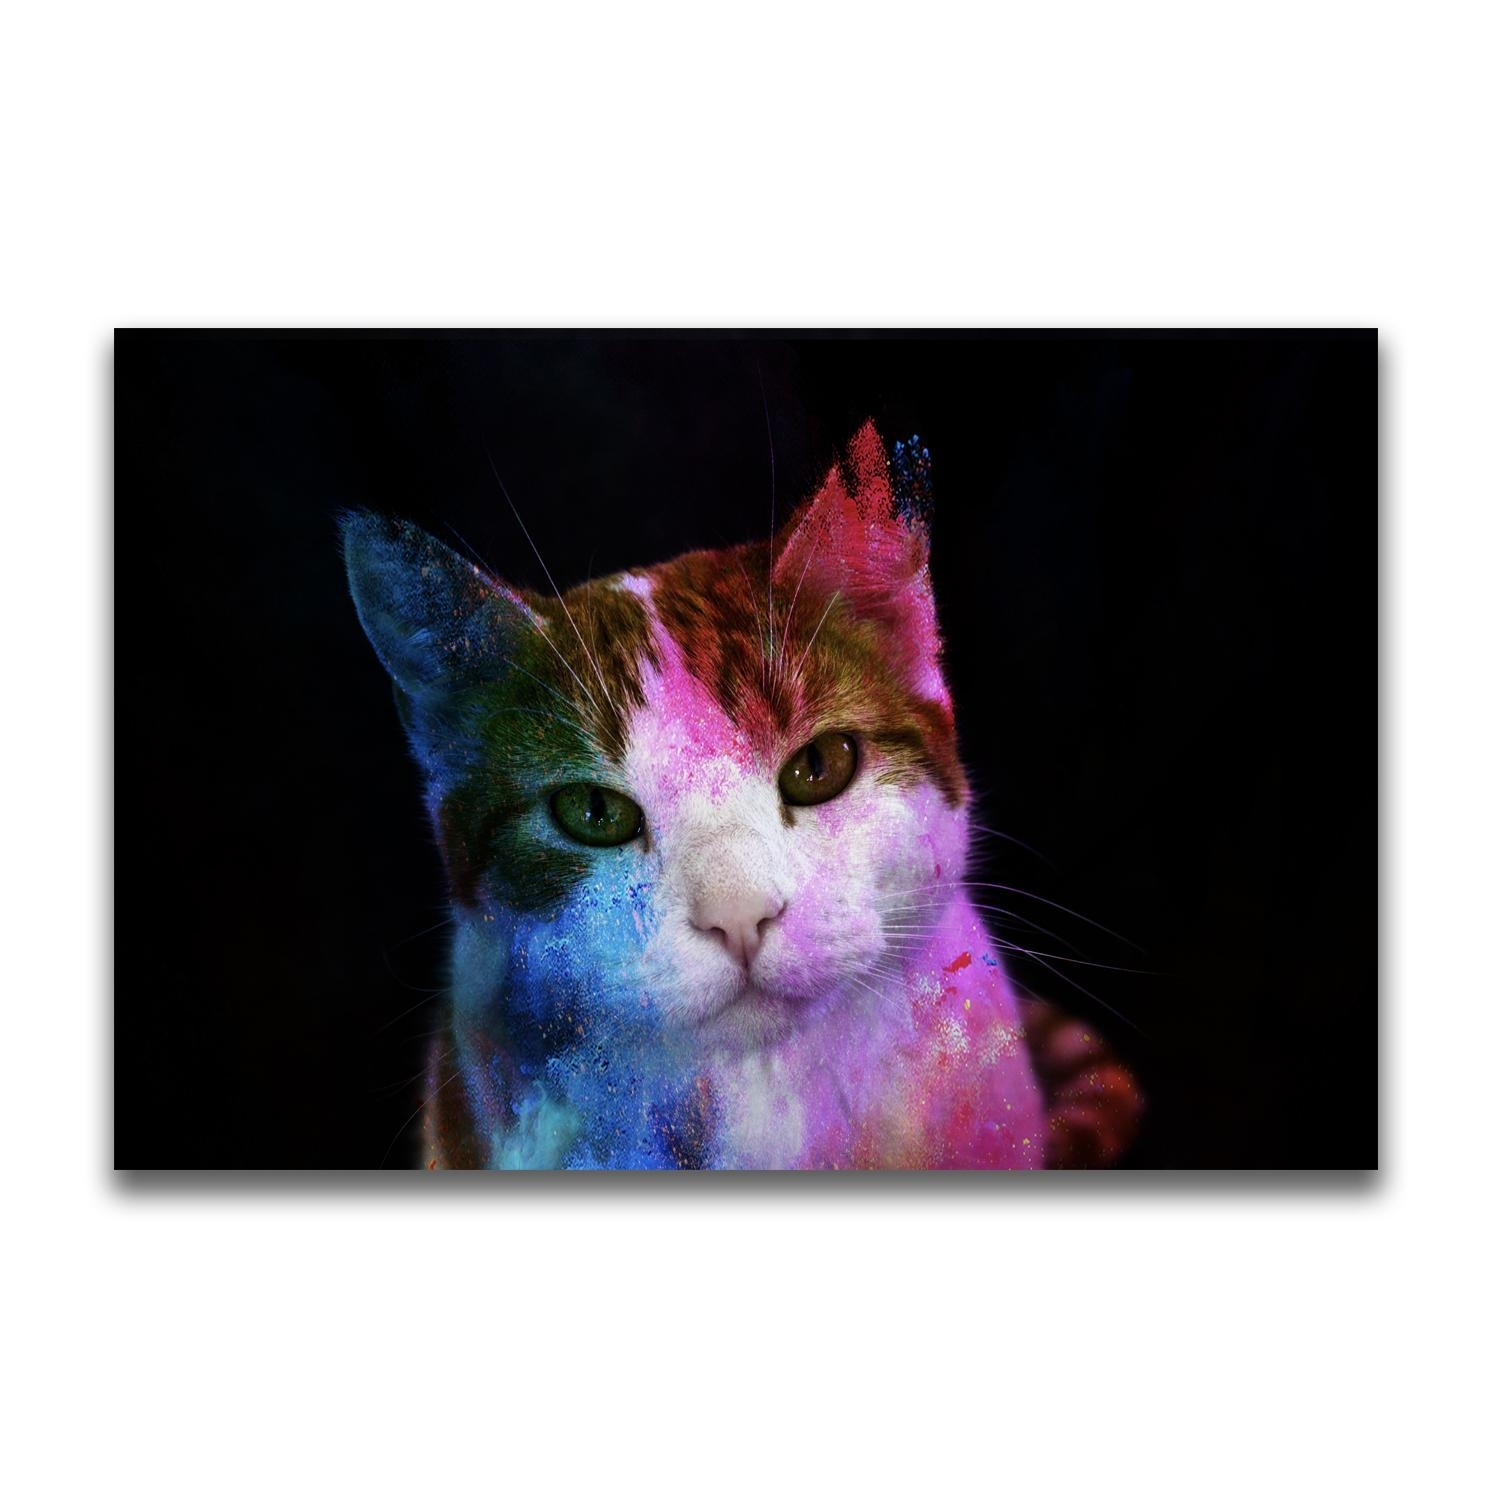 2018 Yj Art A Colorful Cat Unframed Modern Canvas Wall Art For Home In Newest Cat Canvas Wall Art (Gallery 7 of 20)